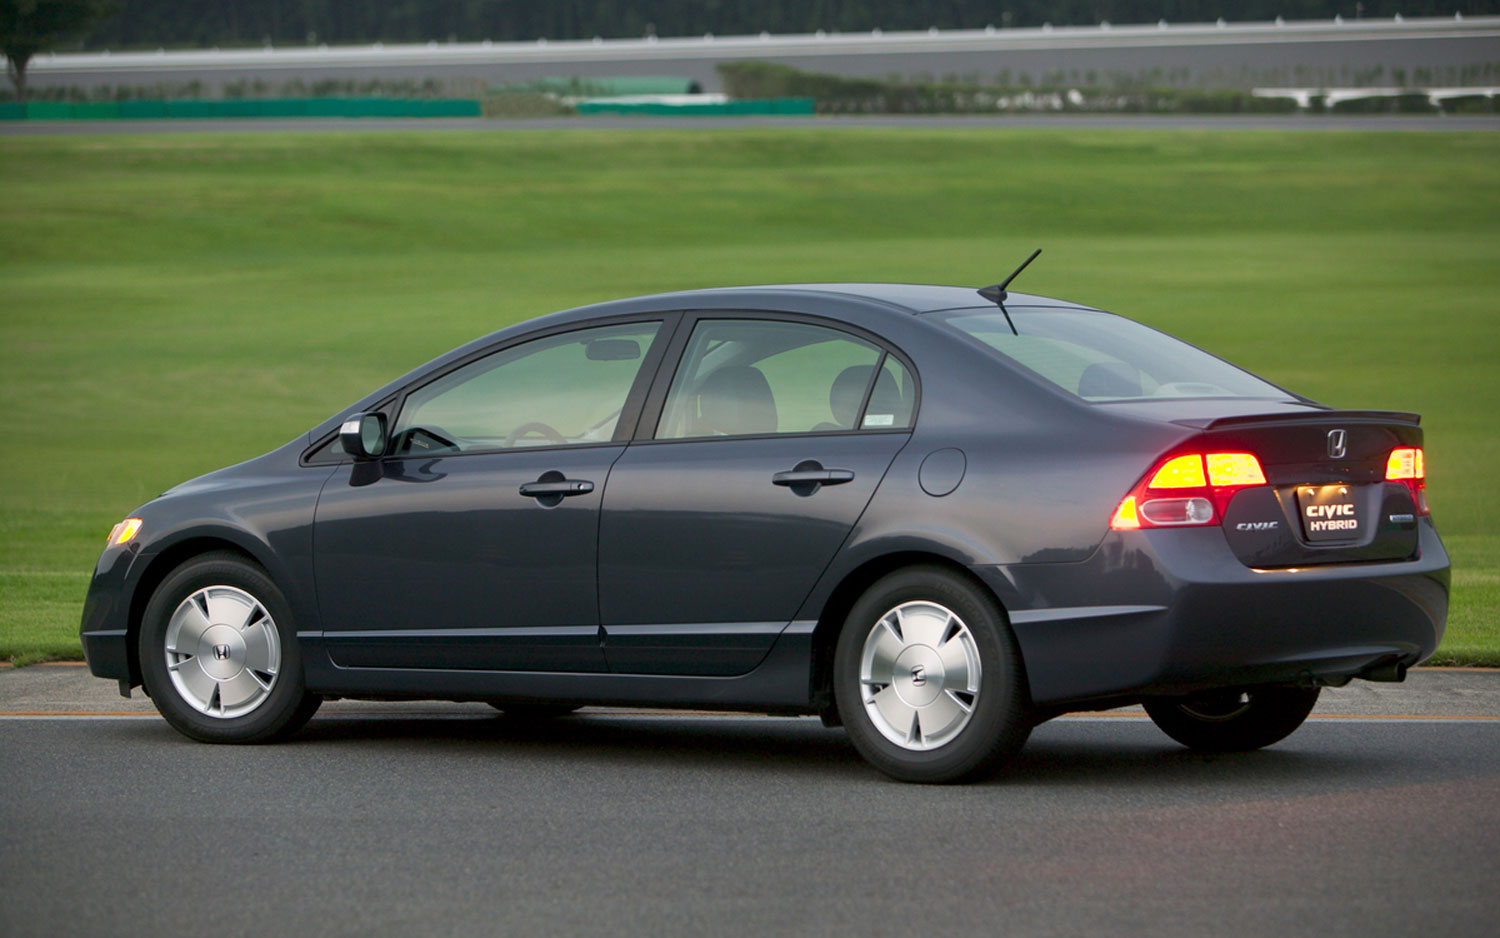 Captivating Civic Hybrid Mileage Plaintiffu0027s Past Cars Presented As Evidence In Small  Claims Appeal